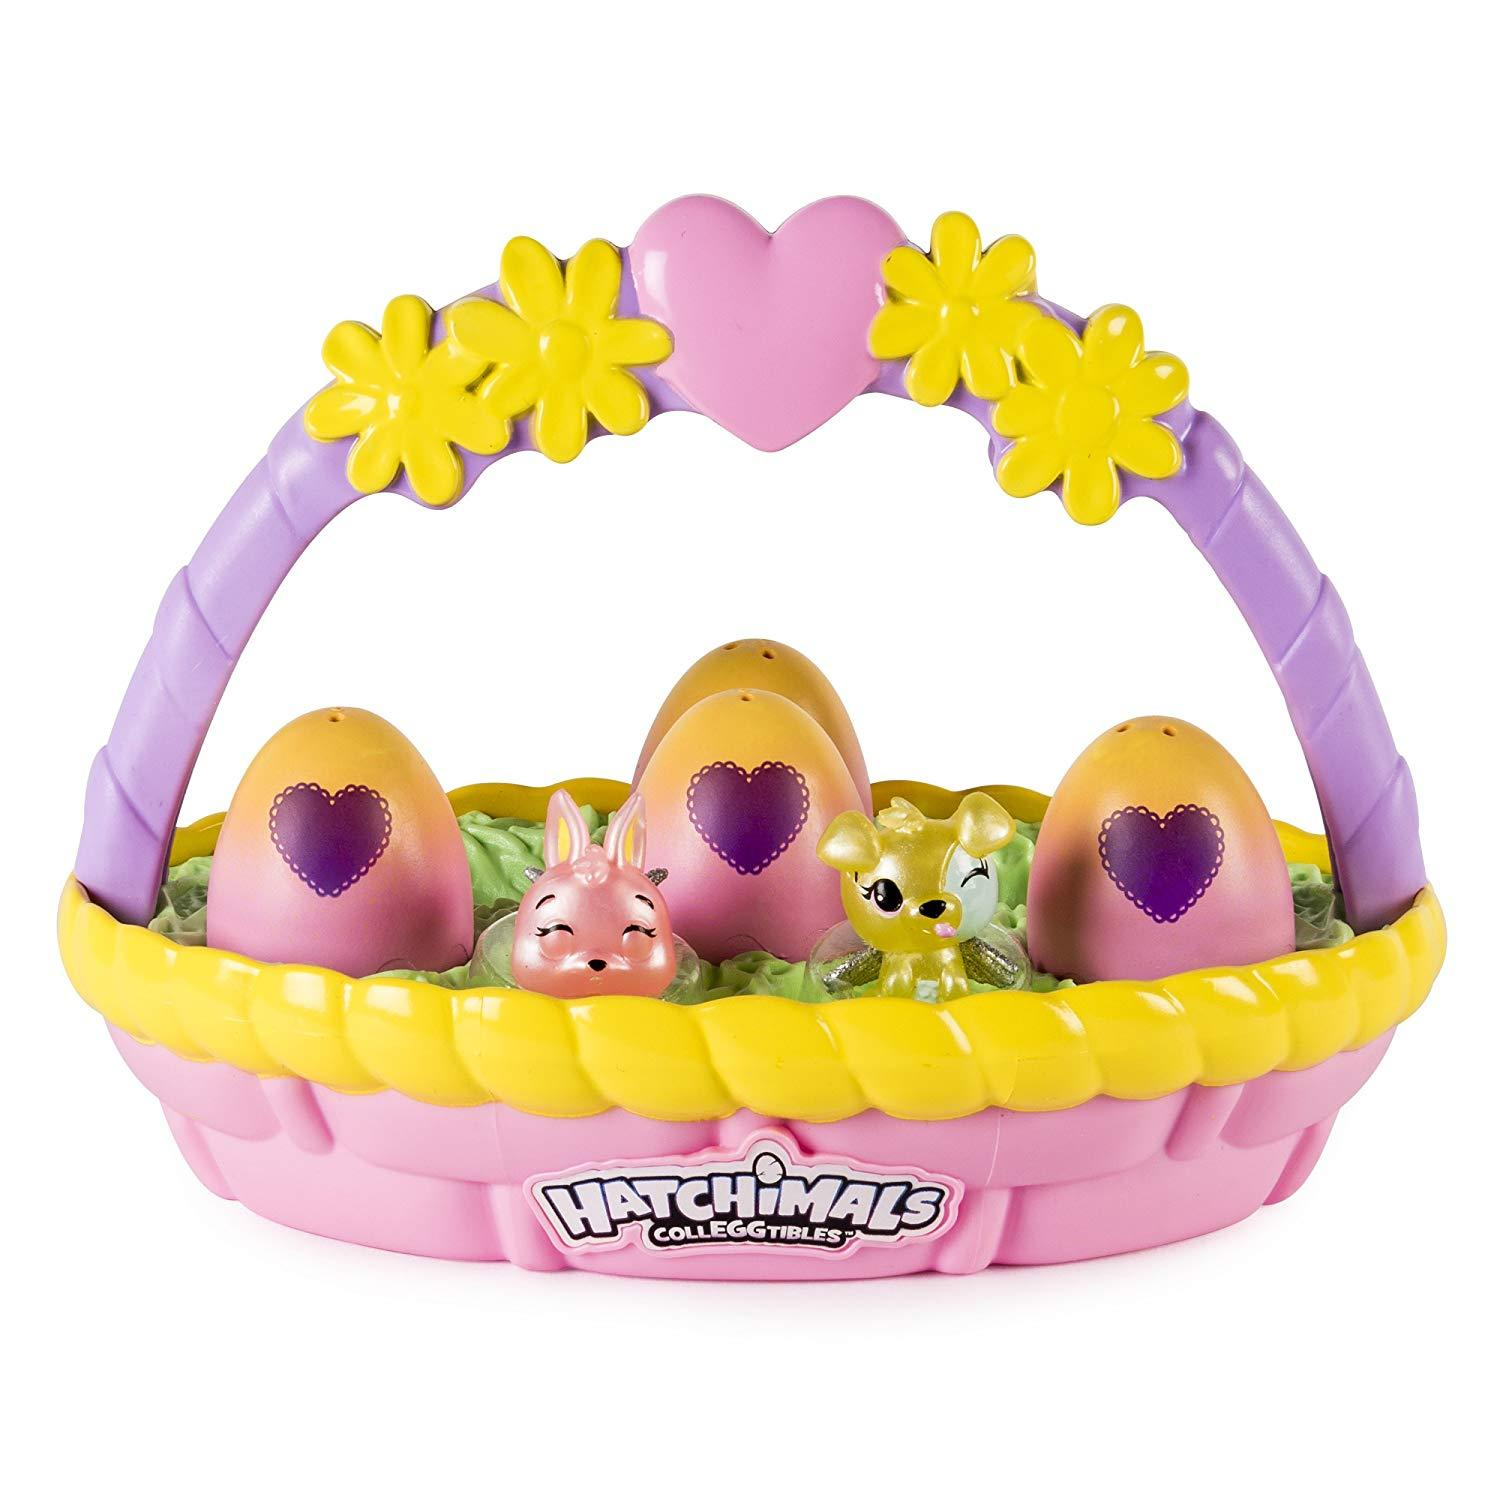 Hatchimals CollEGGtibles Easter Basket with 6 Hatchimals CollEGGtibles